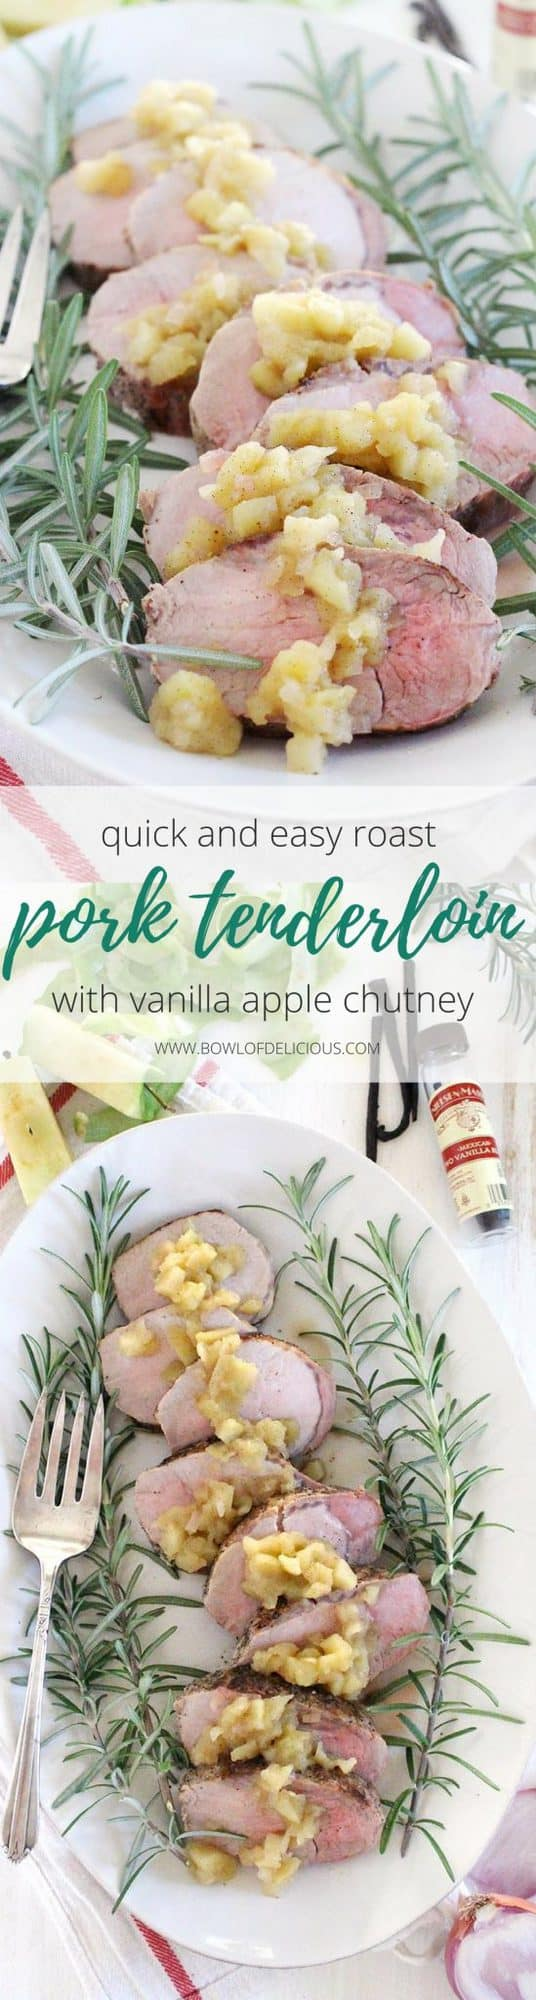 This Roast Pork Tenderloin with Vanilla Apple Chutney is an elegant yet simple, quick, and easy main dish that's perfect for your holiday feast or a weeknight dinner! The pork is juicy and the apple chutney, made with vanilla bean, is tart, slightly sweet, and earthy. #PorkTenderloin #AppleChutney #Paleo